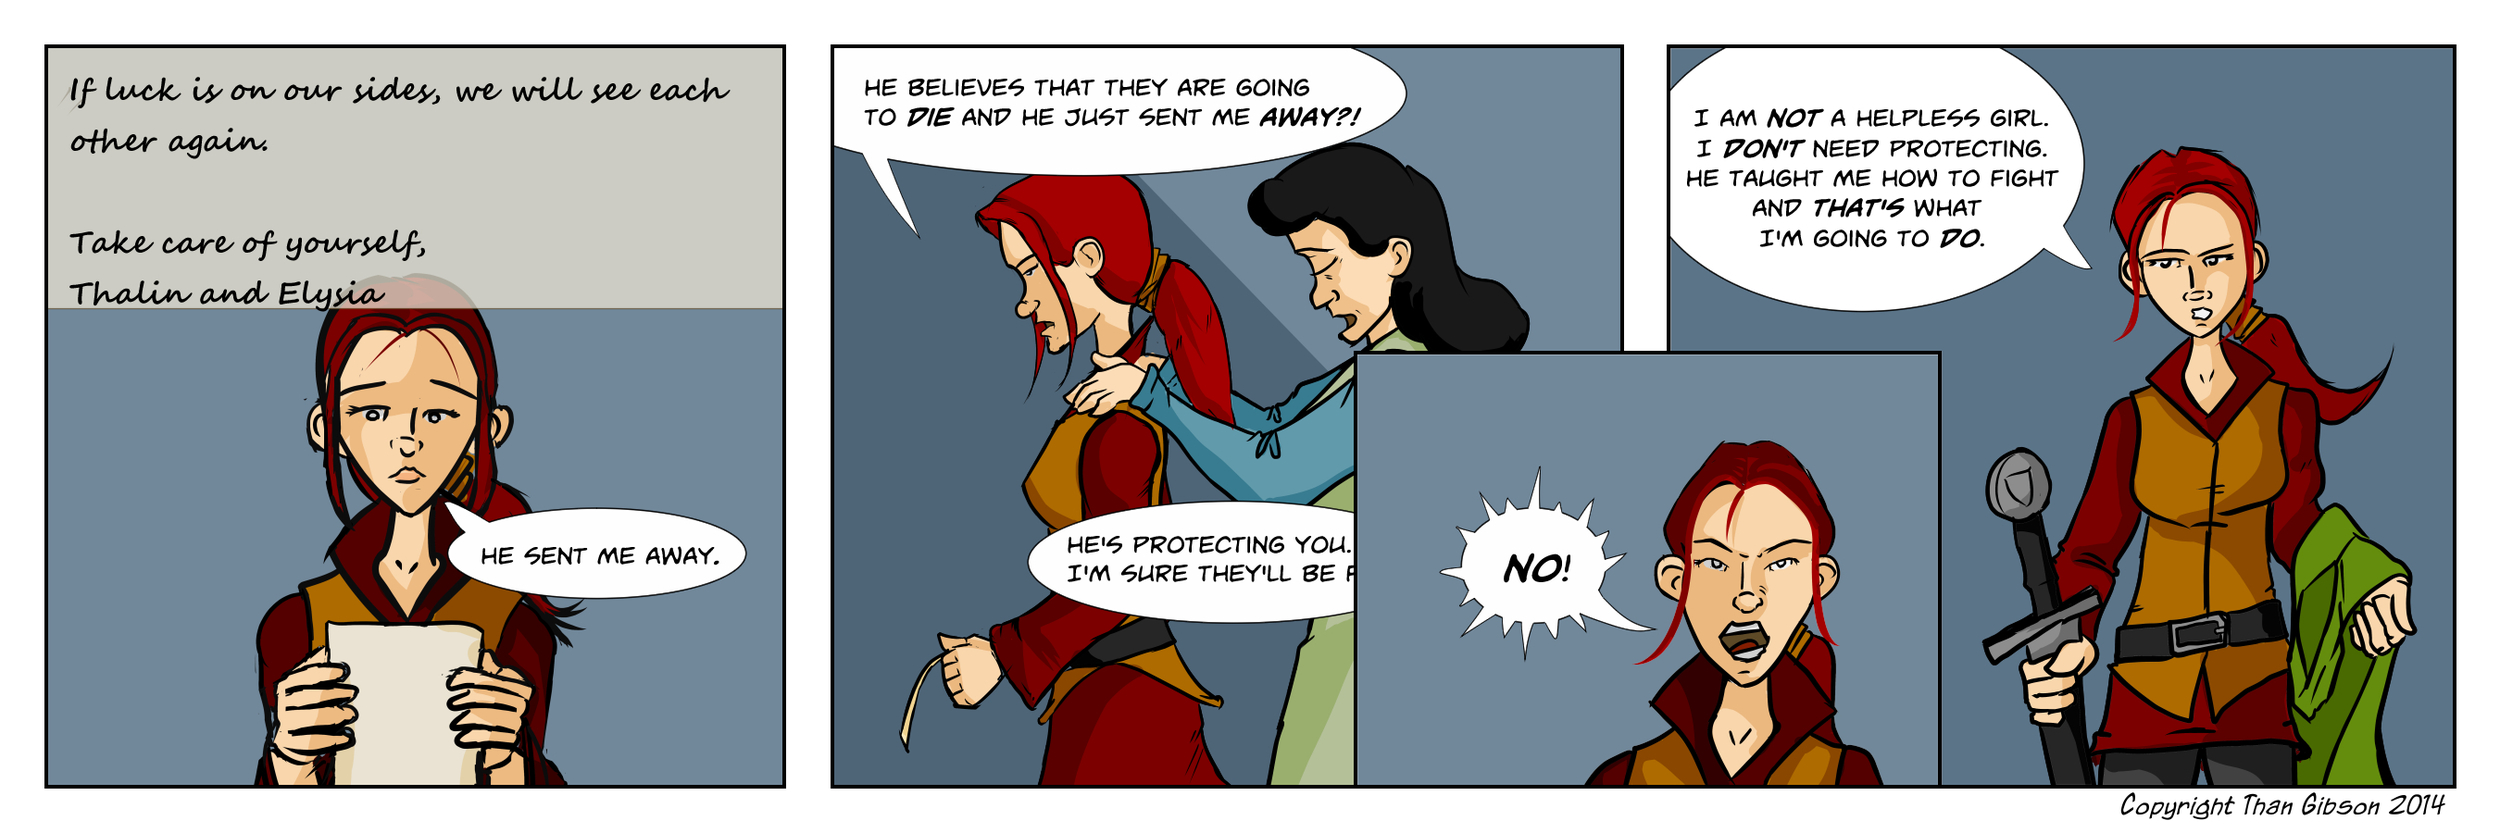 Strip 31 - Click the image for a larger view!